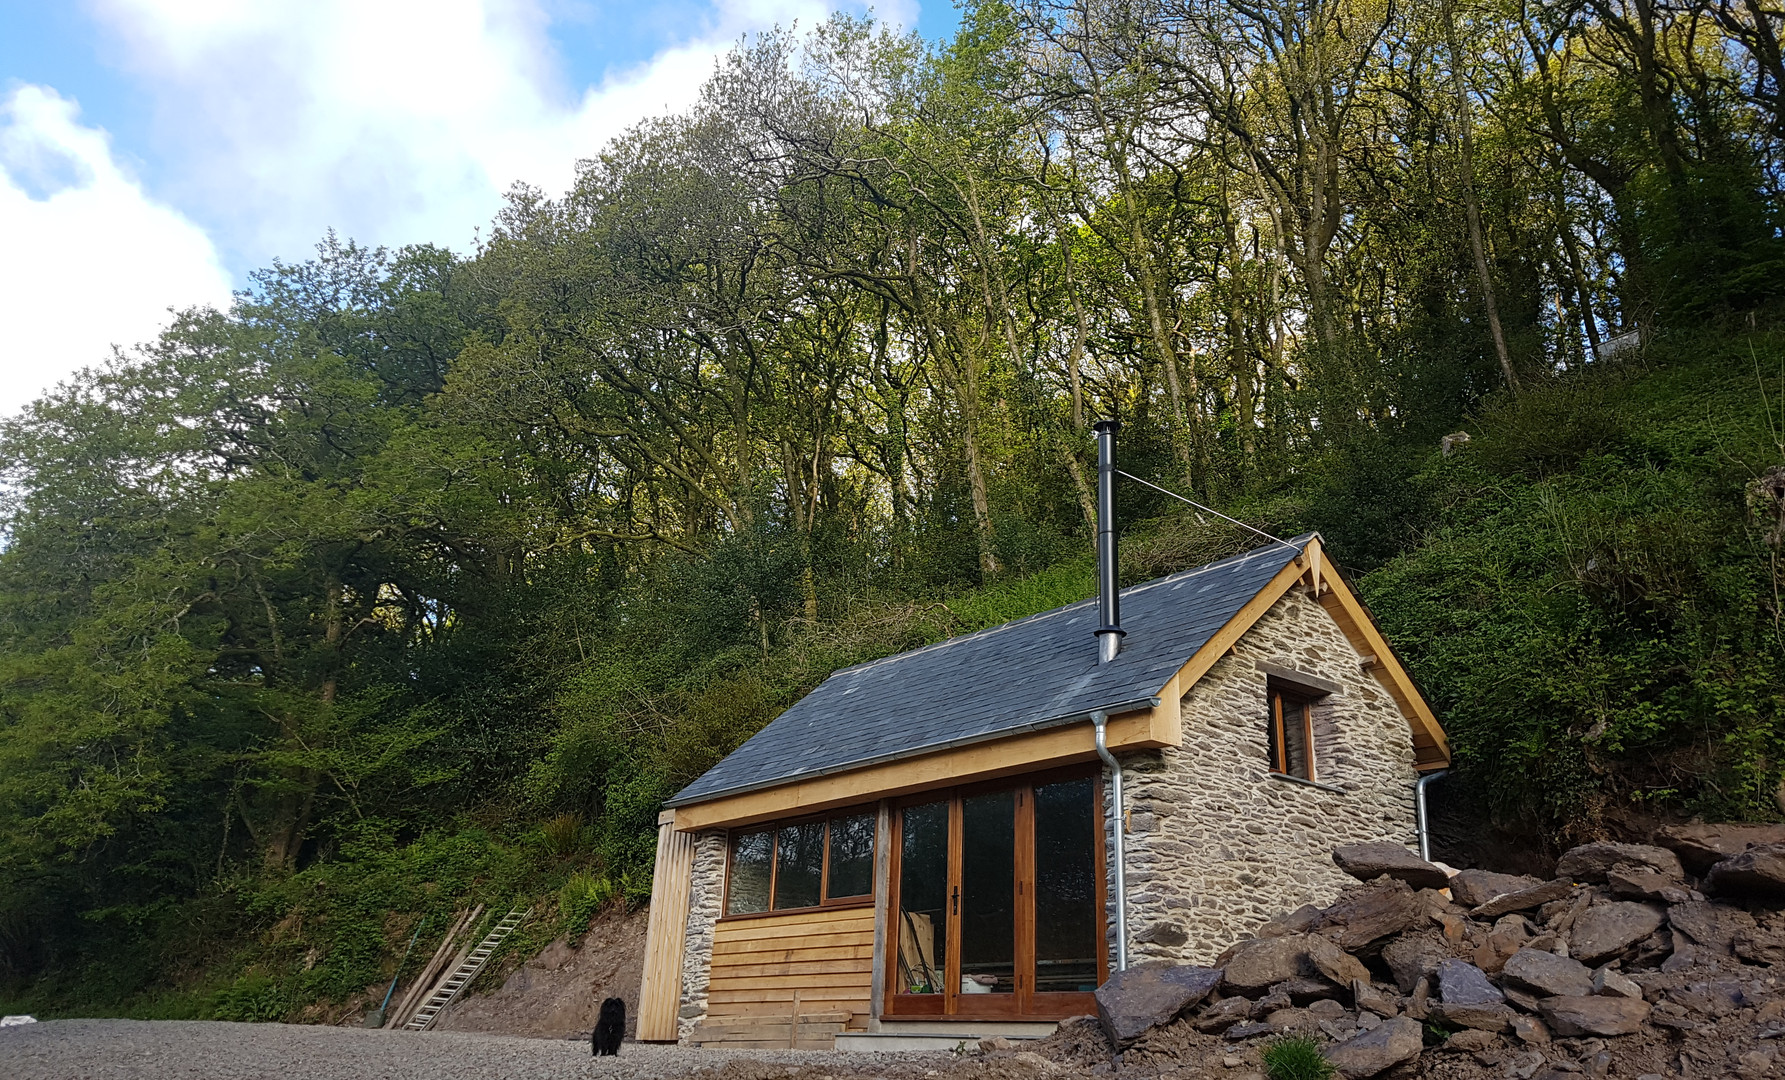 Craig is responsible for the roofing in beautiful Welsh slate